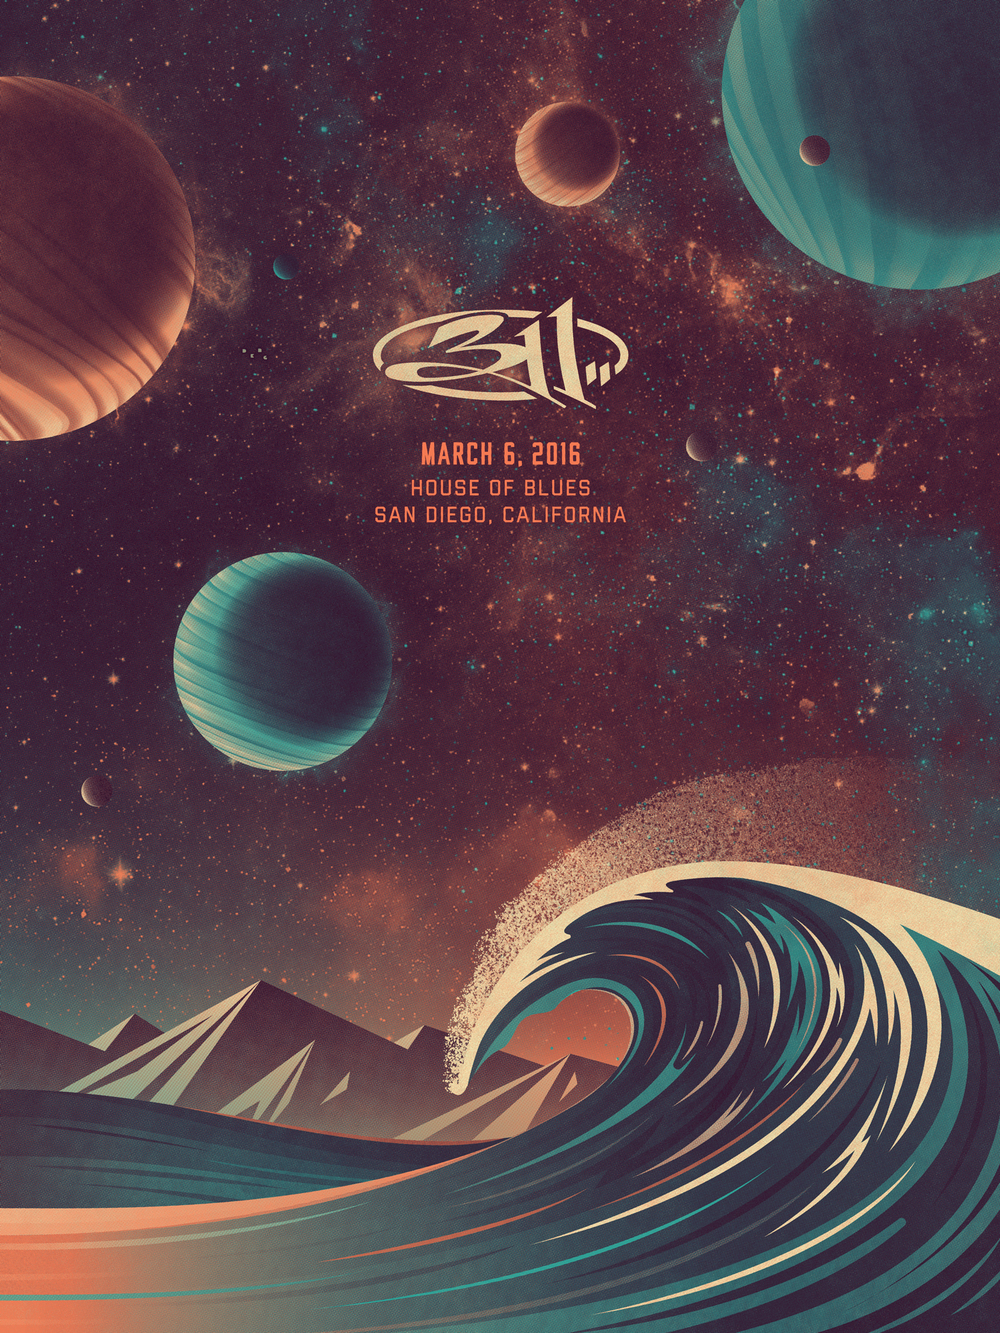 311 Poster (March 6, 2016)